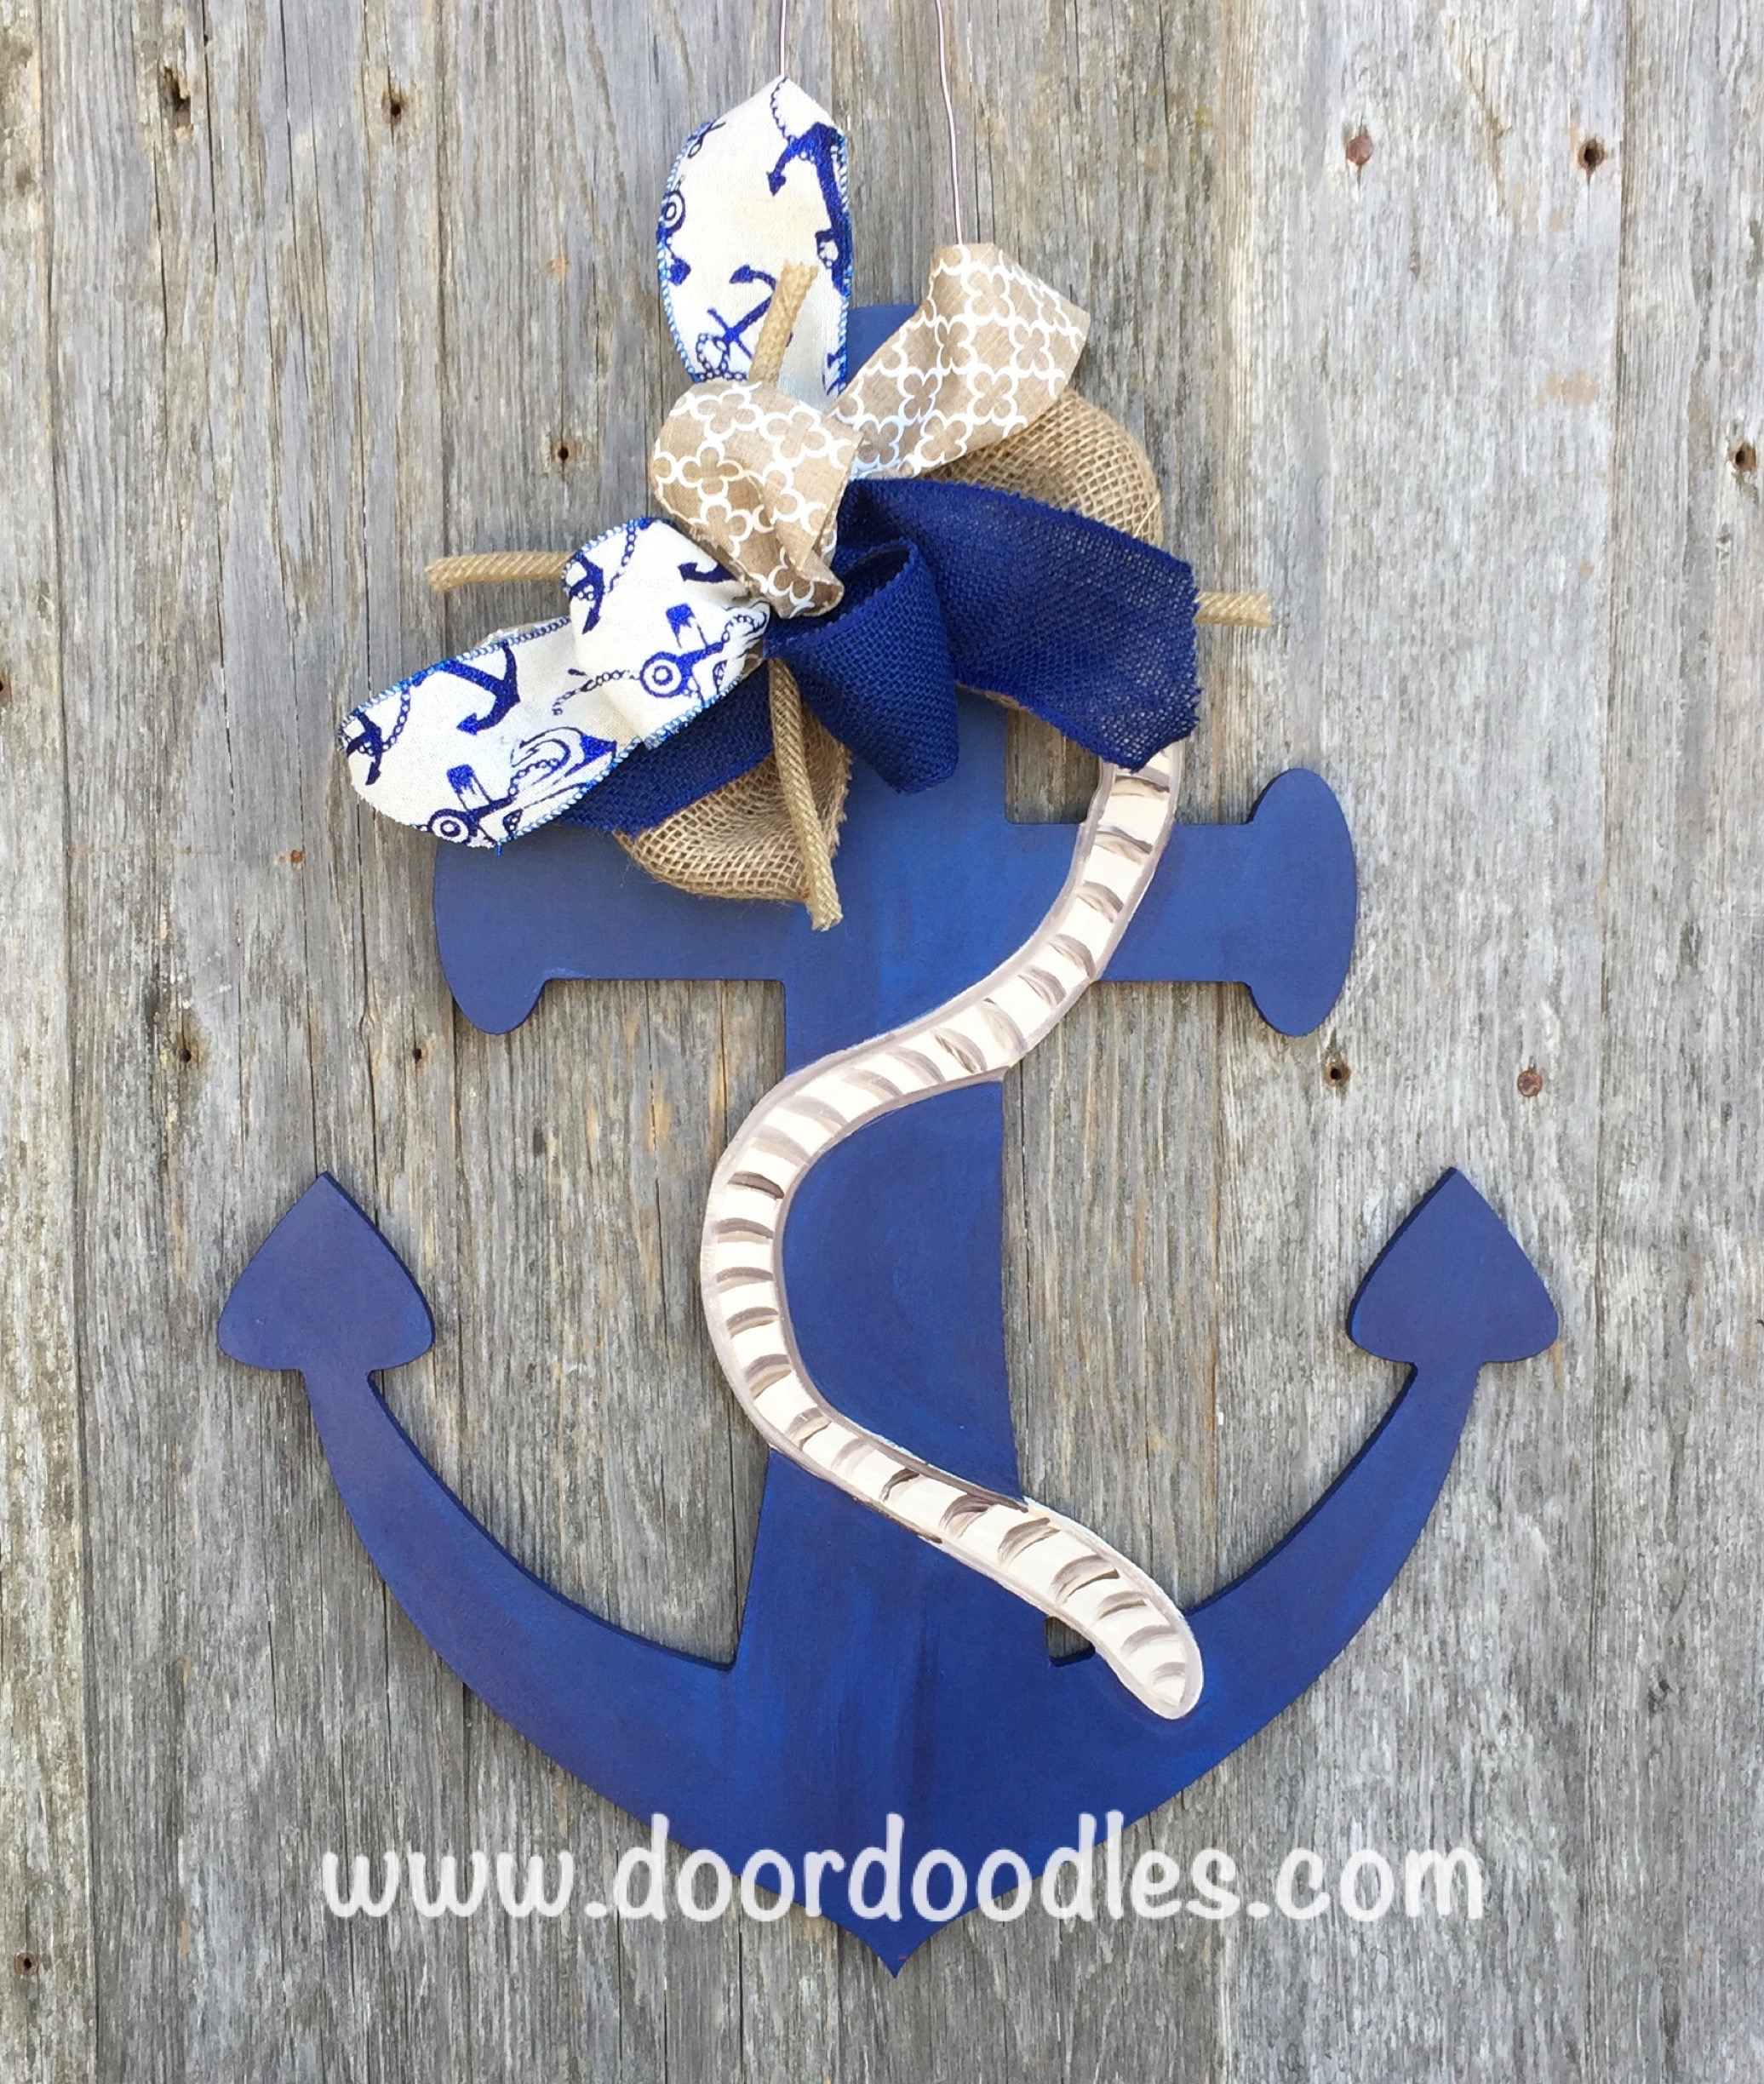 Wooden anchor door hanger wall decoration nautical decor for Anchor decoration